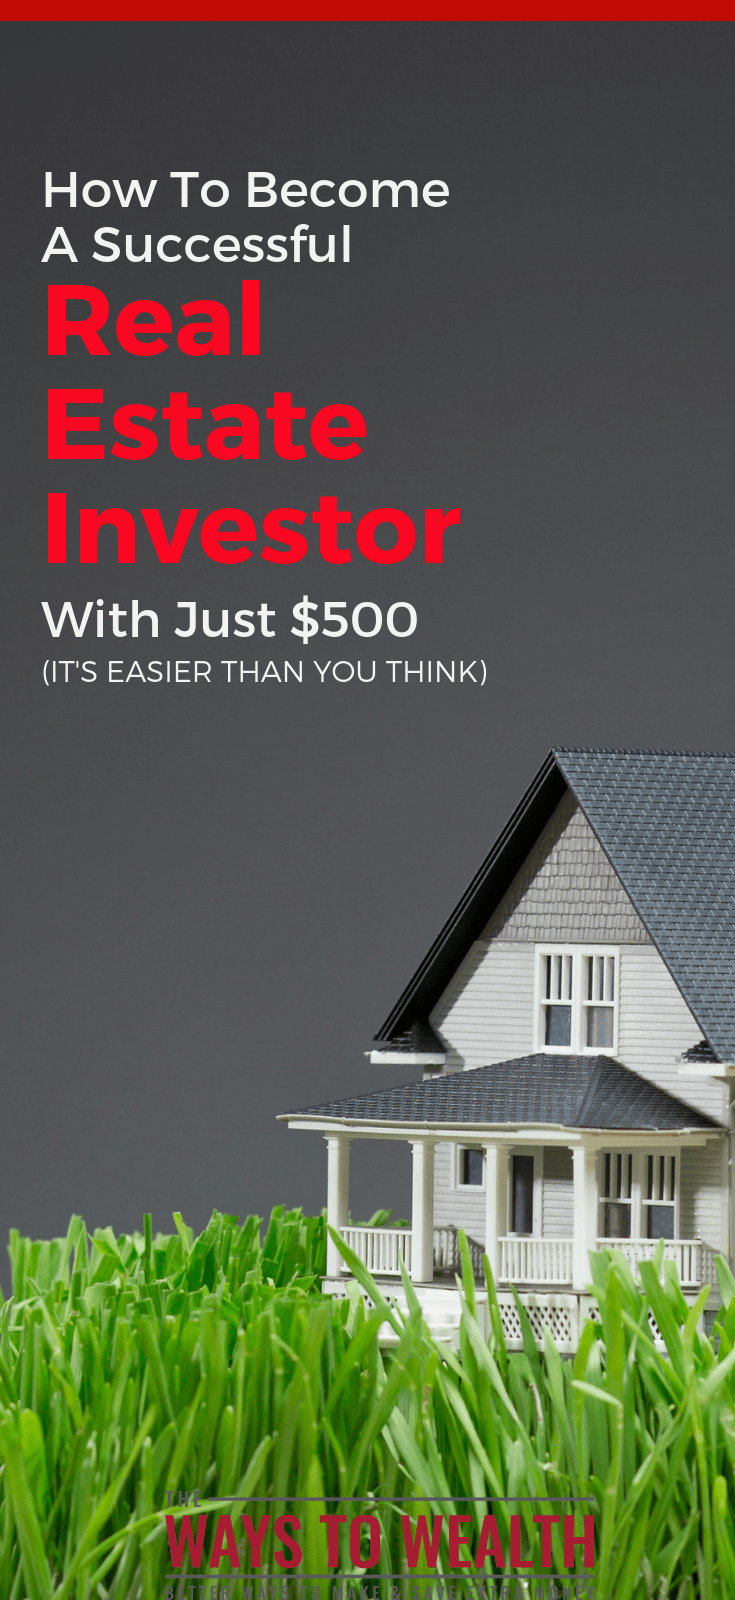 How To Become A Successful Real Estate Investor With Just $500 get started investing | beginner real estate investing | ways to invest in real estate | real estate investing strategies | commercial real estate investing #thewaystowealth #invest #investing #passiveincome